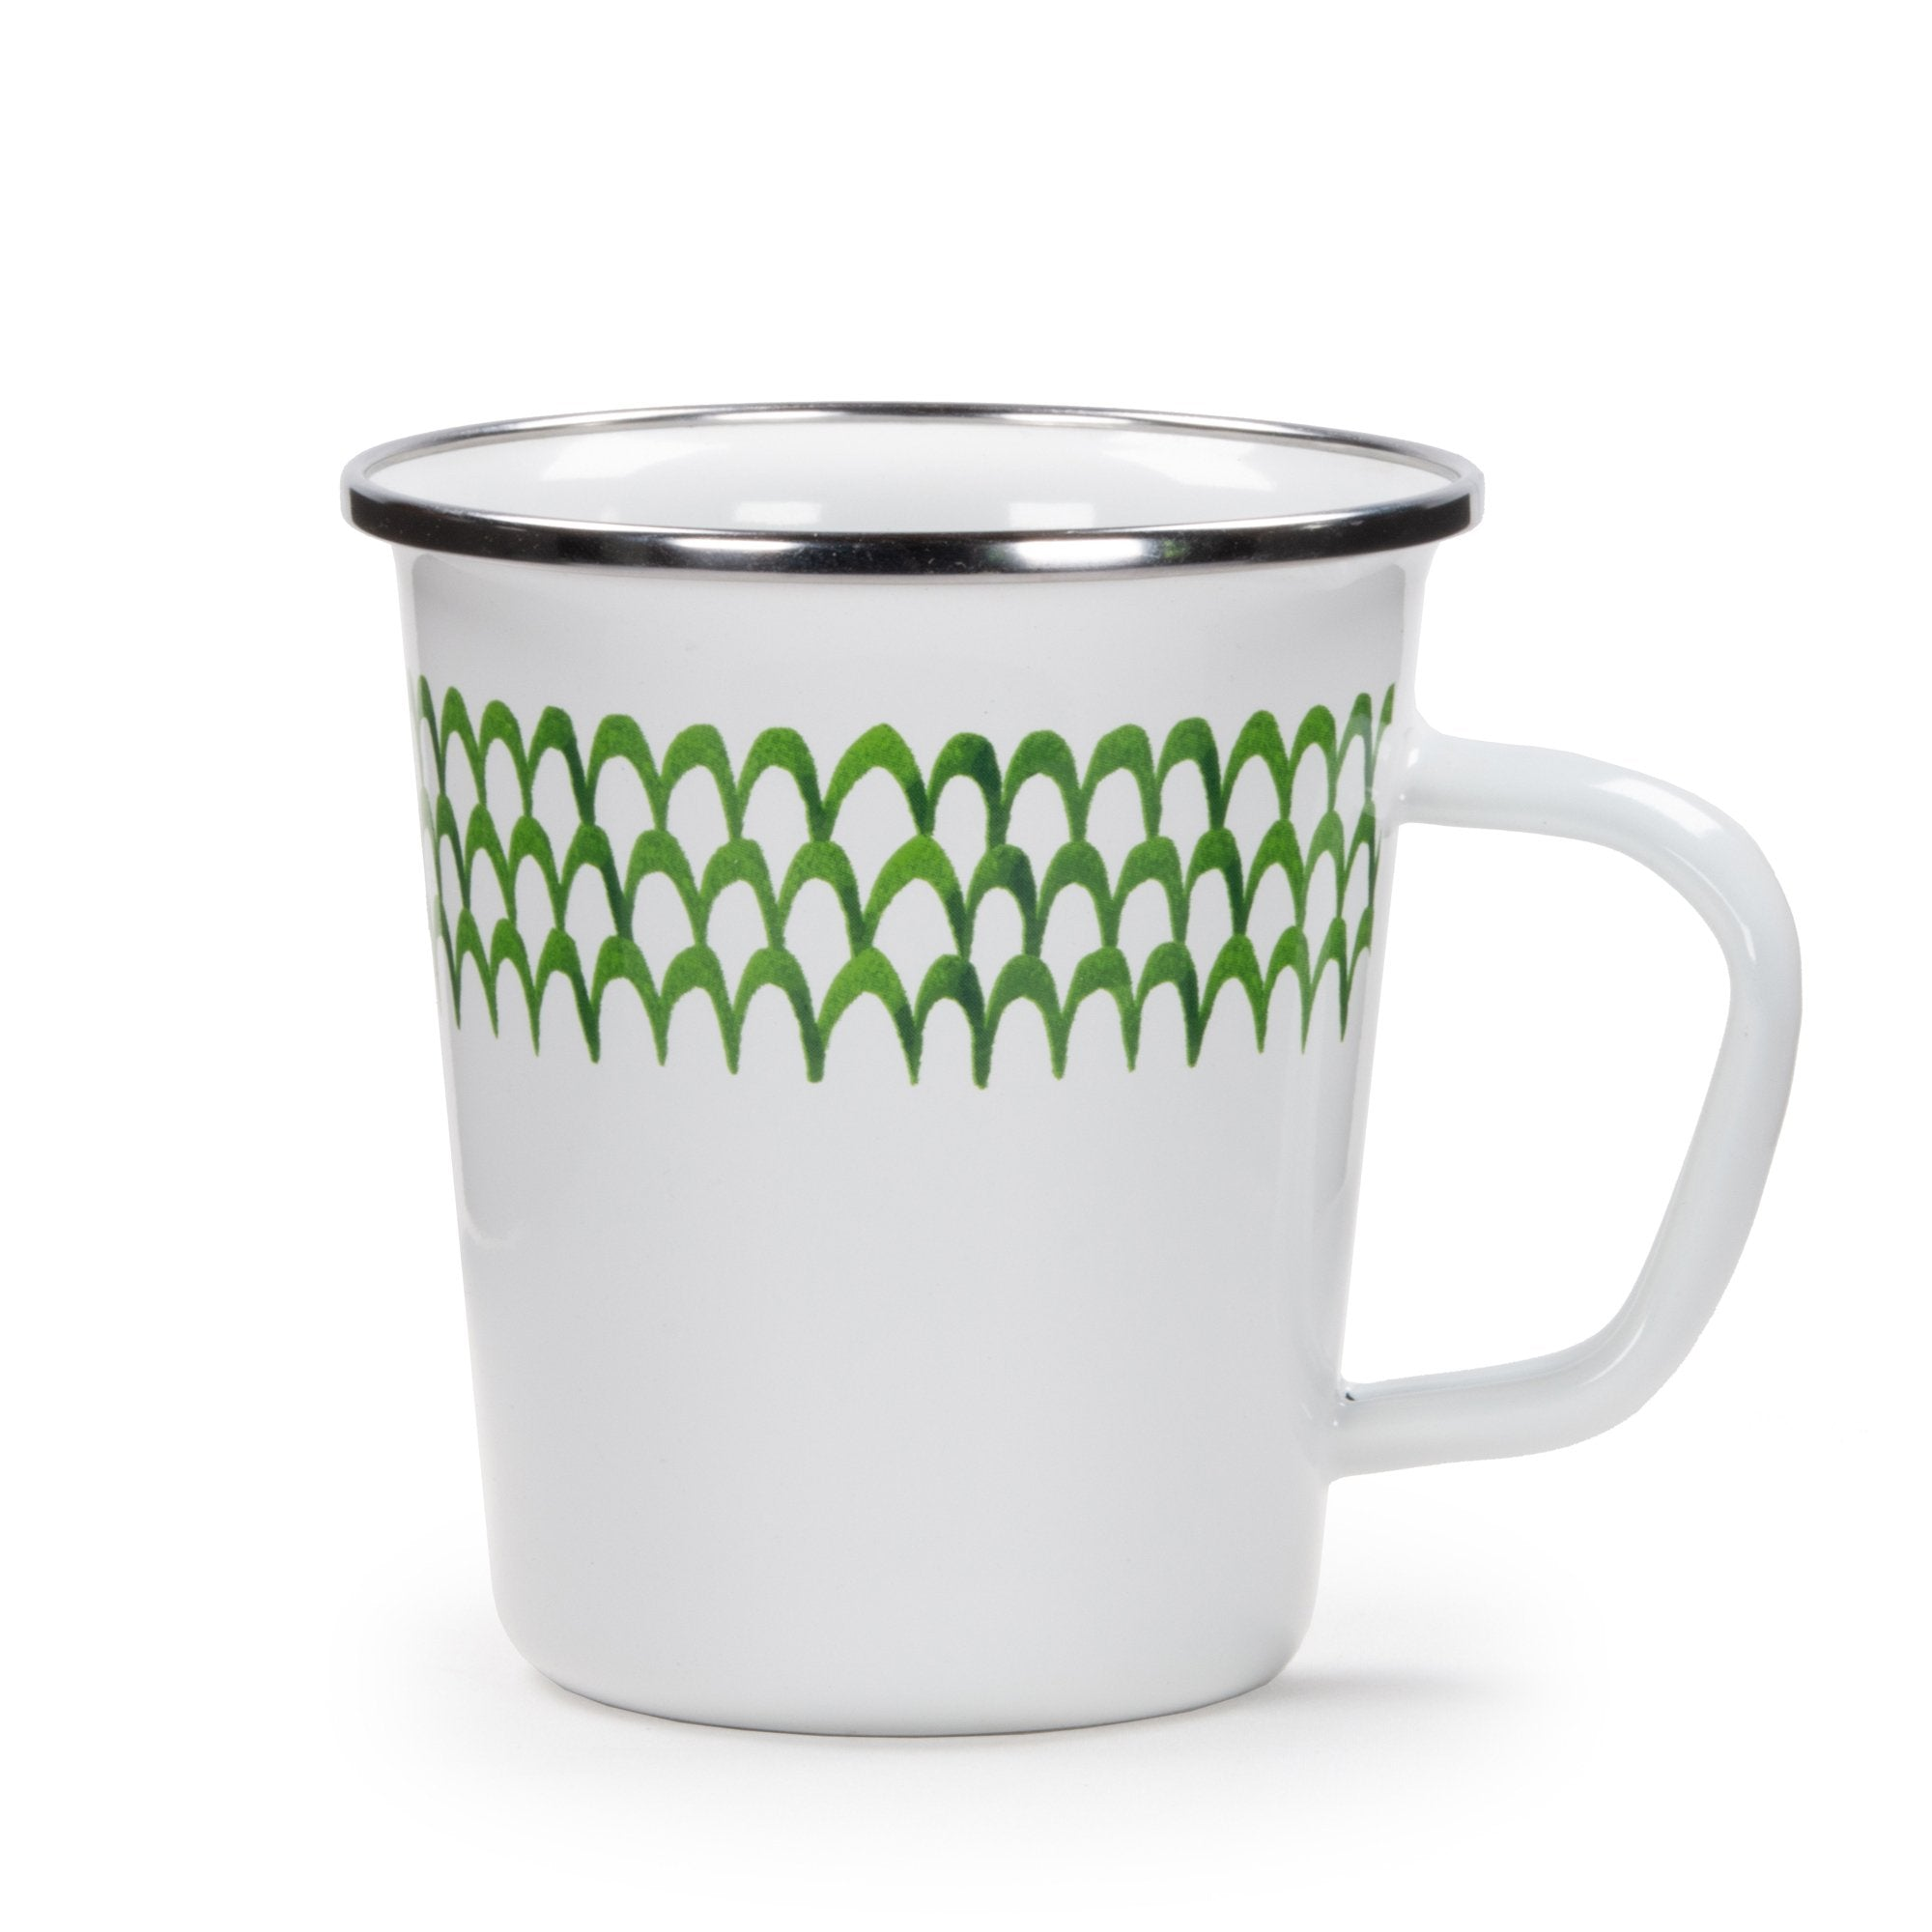 GS66S4 - Set of 4 Green Scallop Latte Mugs Product 1